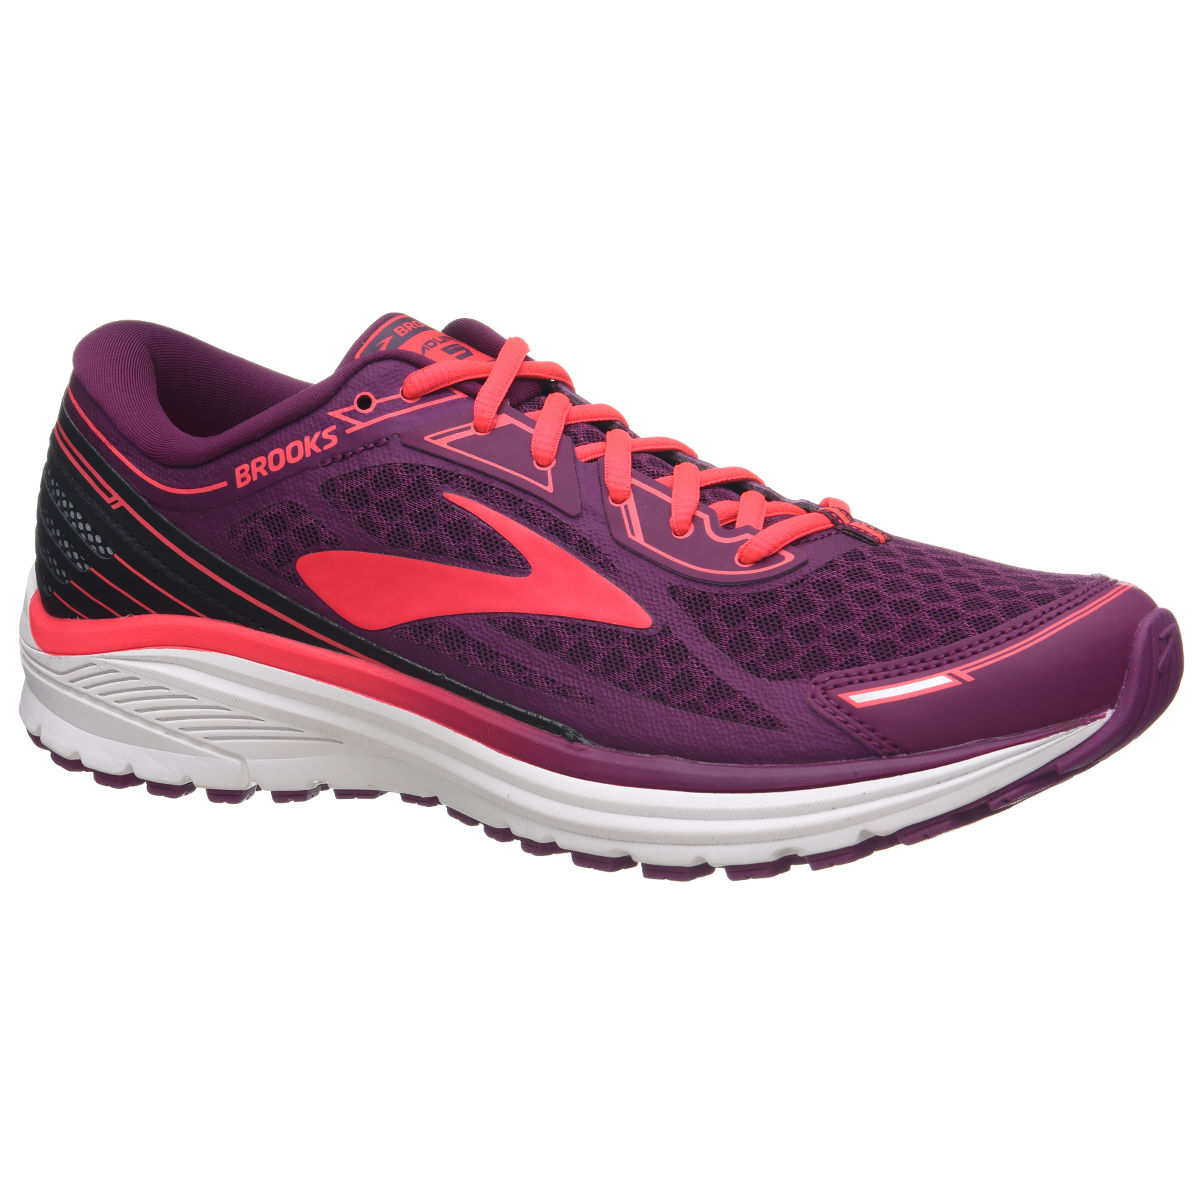 Brooks Women's Aduro 5 Shoes - Zapatillas de running